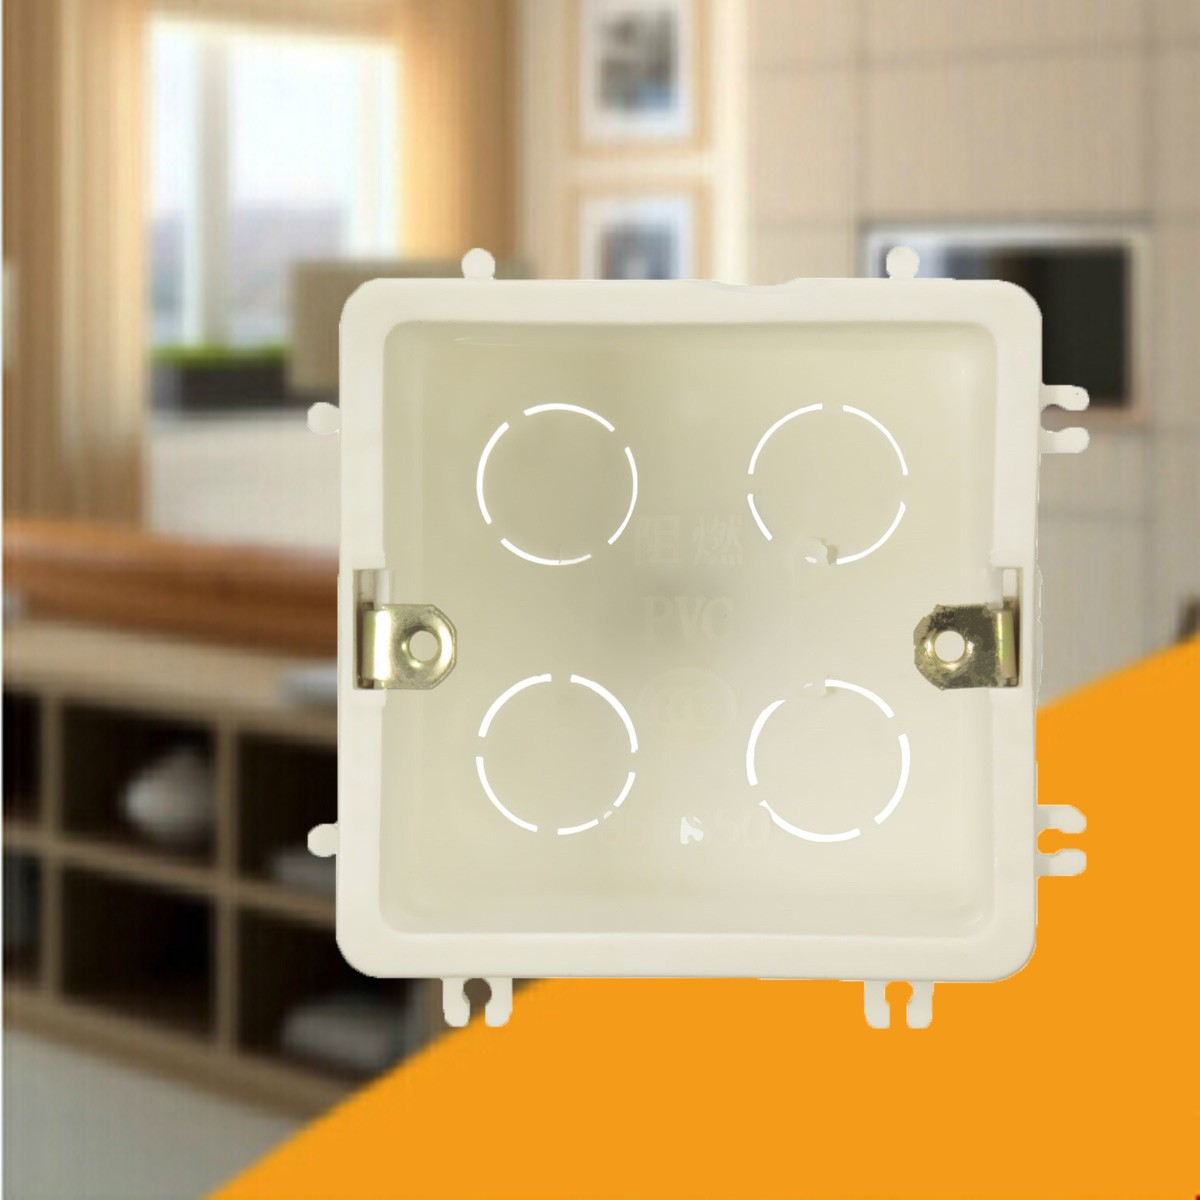 86*86mm Cassette Universal White Wall Mounting Box for Wall Switch and Plastic Enclosure Socket Back Box Outlet 86mm 4pcs a lot diy plastic enclosure for electronic handheld led junction box abs housing control box waterproof case 238 134 50mm